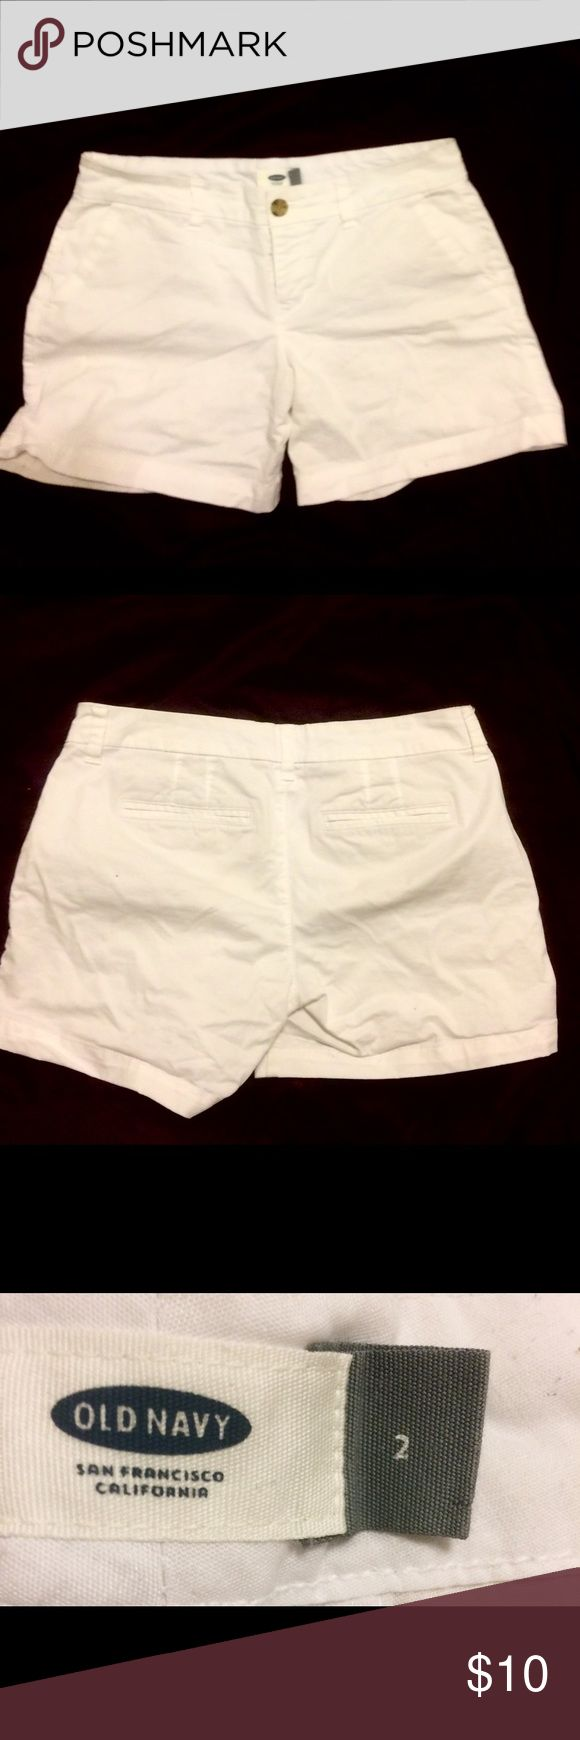 Cute Old Navy White Jean Shorts Cute White Old Navy Jean Shorts. No stains and in great condition. Size 2 but fits more like a 4/6, check company websiteThink Spring! 😊 Old Navy Shorts Jean Shorts